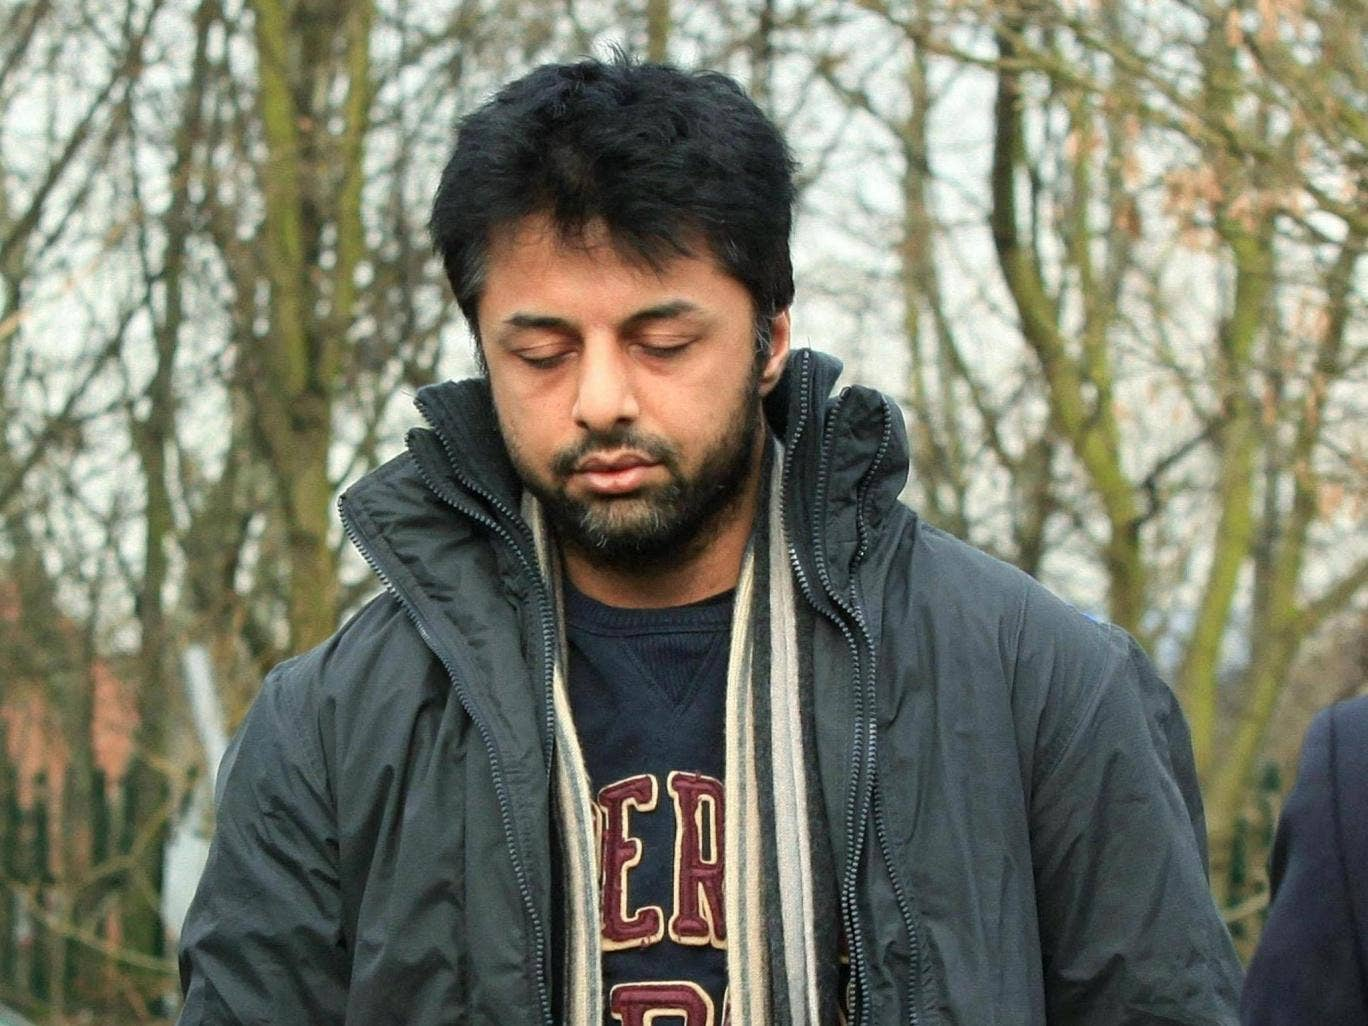 January 2011: Shrien Dewani has been receiving treatment for depression and post traumatic stress disorder at mental hospitals near Bristol since his wife's death.